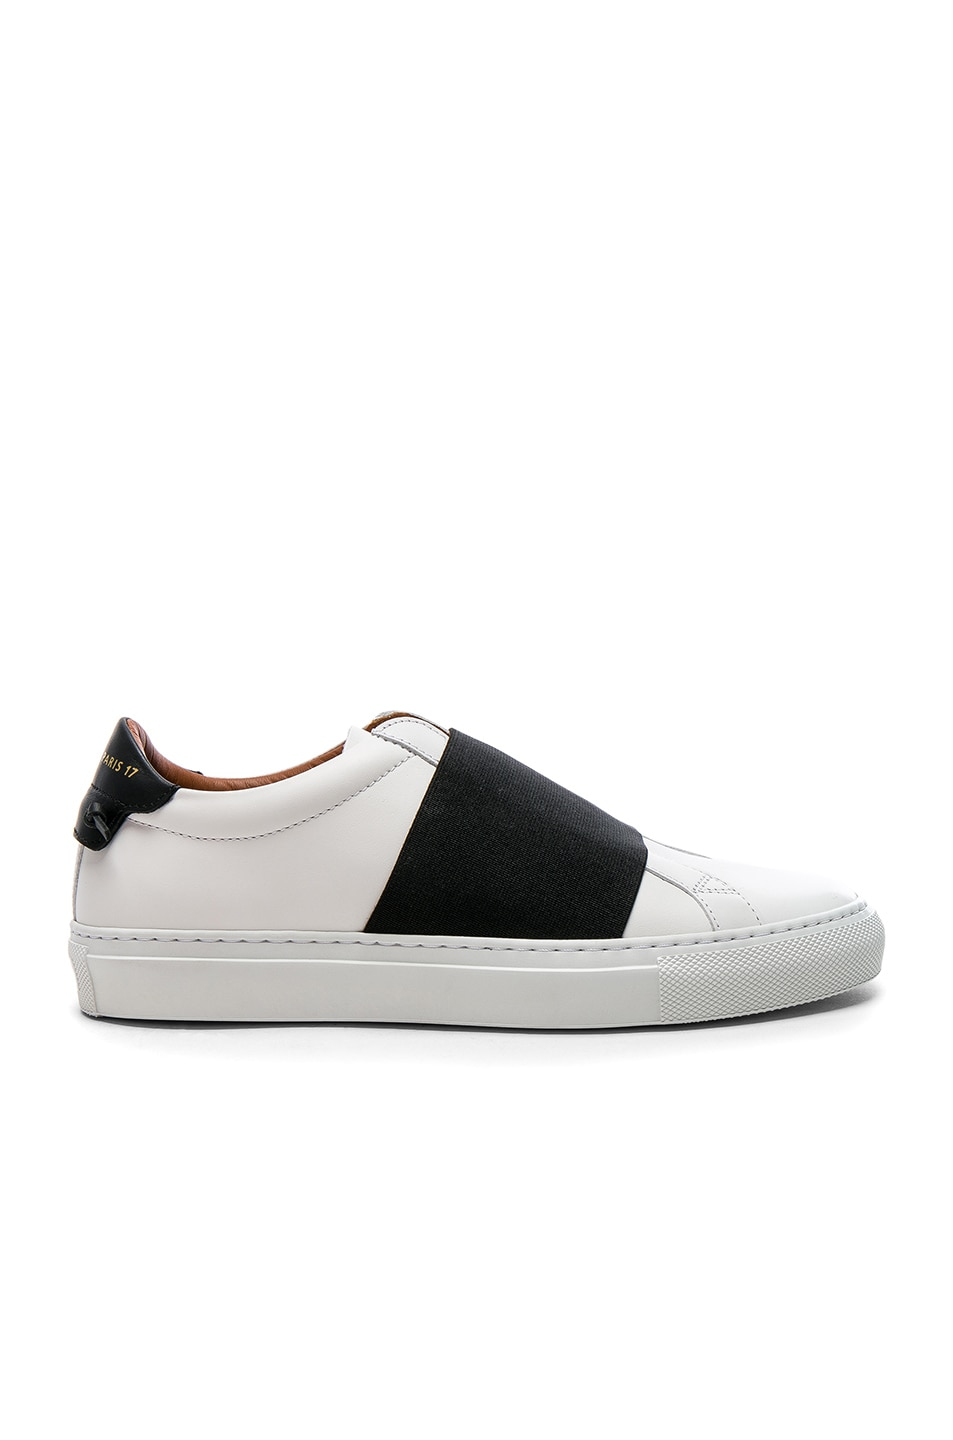 Image 1 of Givenchy Leather Urban Street Elastic Strap Low Sneakers in Black & White